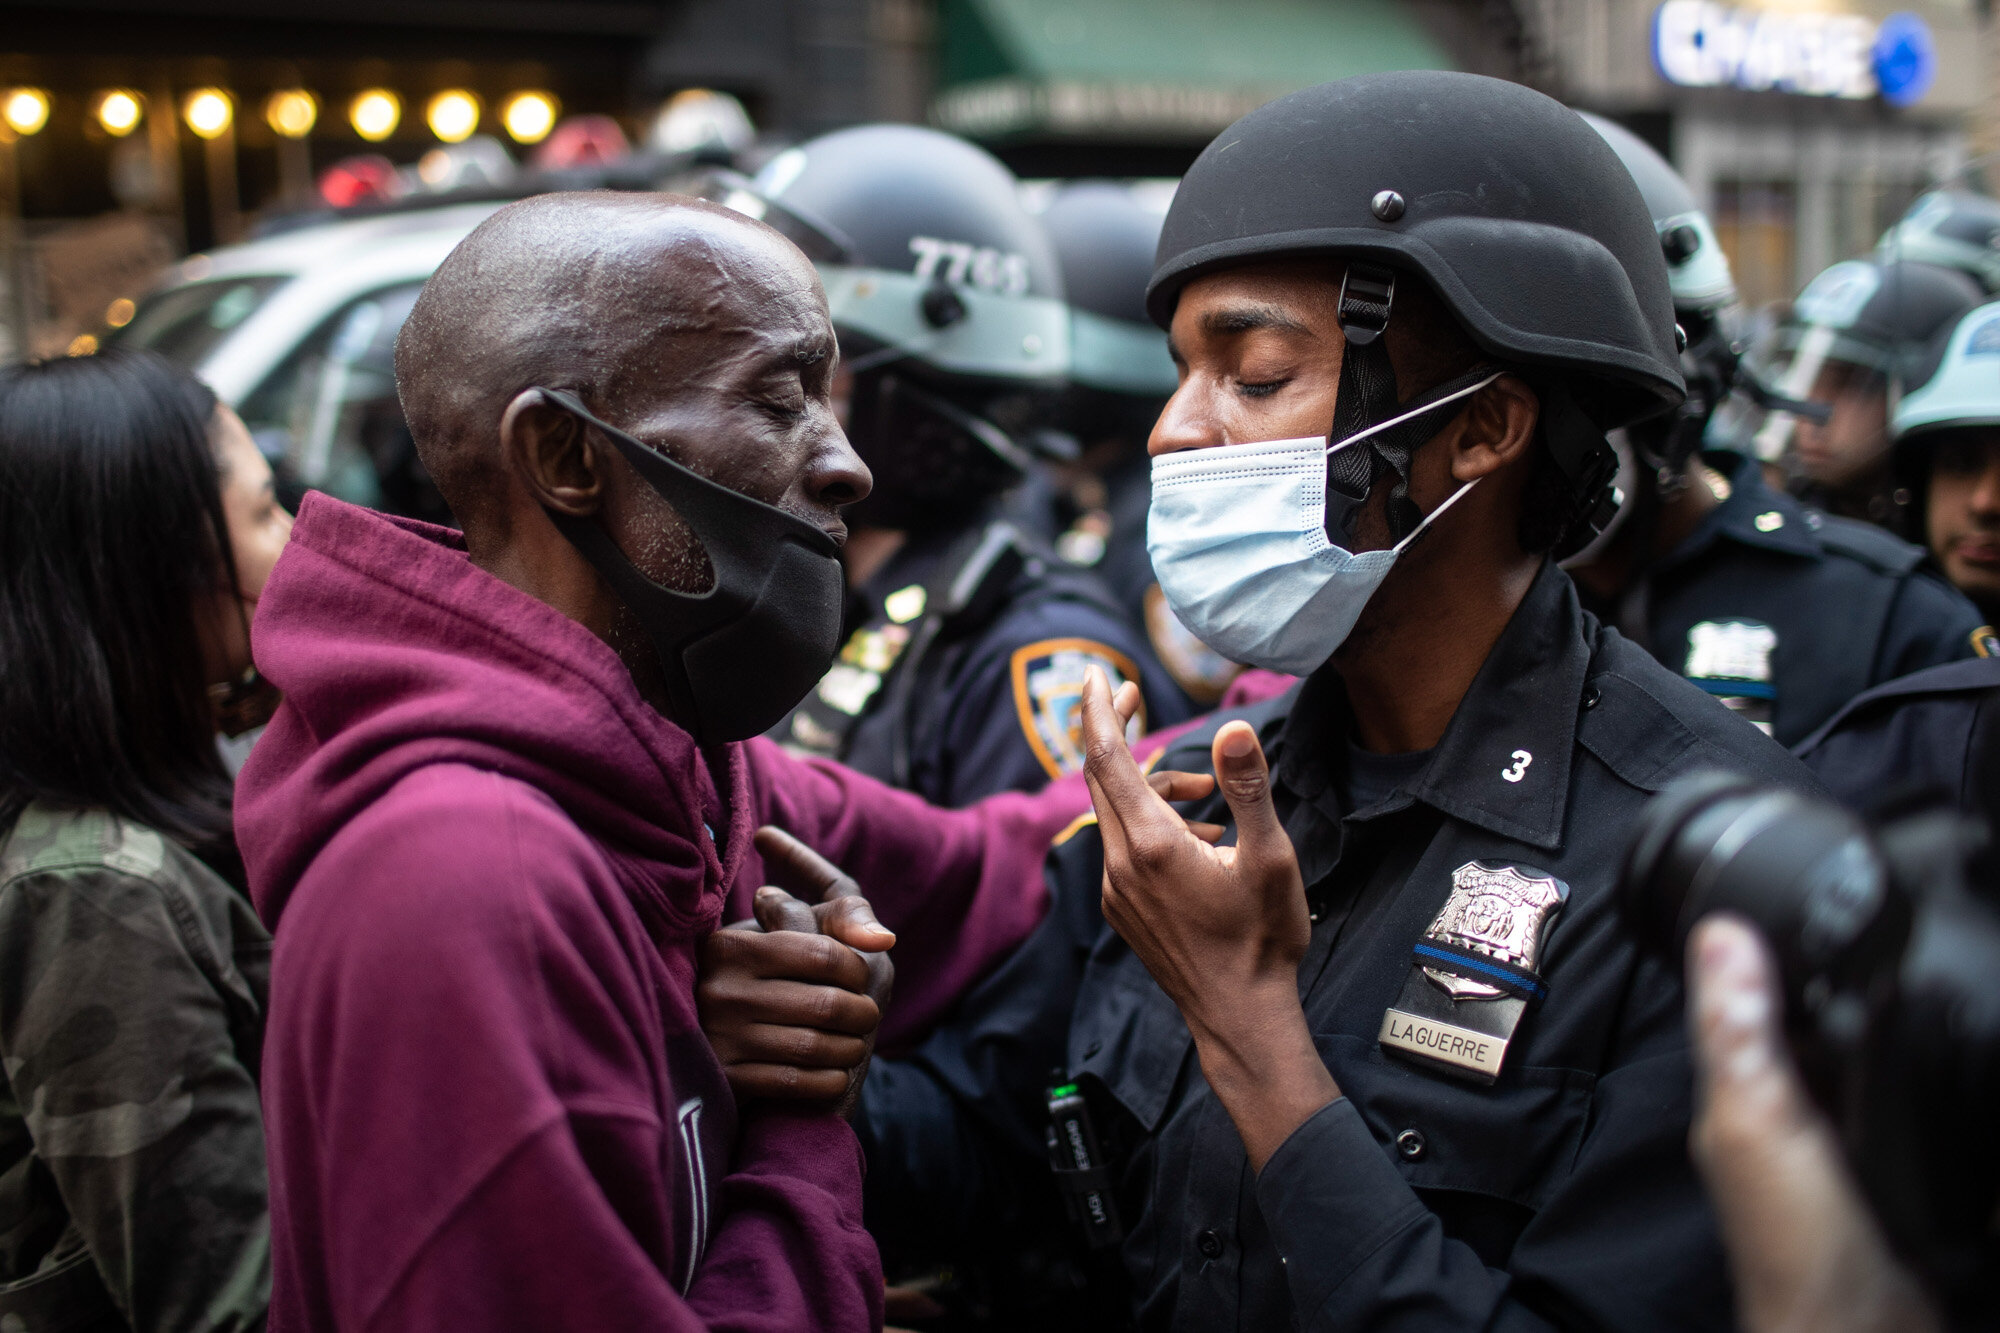 A protester and a police officer shake hands in the middle of a standoff during a rally in New York on June 2, 2020, calling for justice over the death of George Floyd, a Black man who died under the knee of a white police officer in Minneapolis on May 25. (AP Photo/Wong Maye-E)